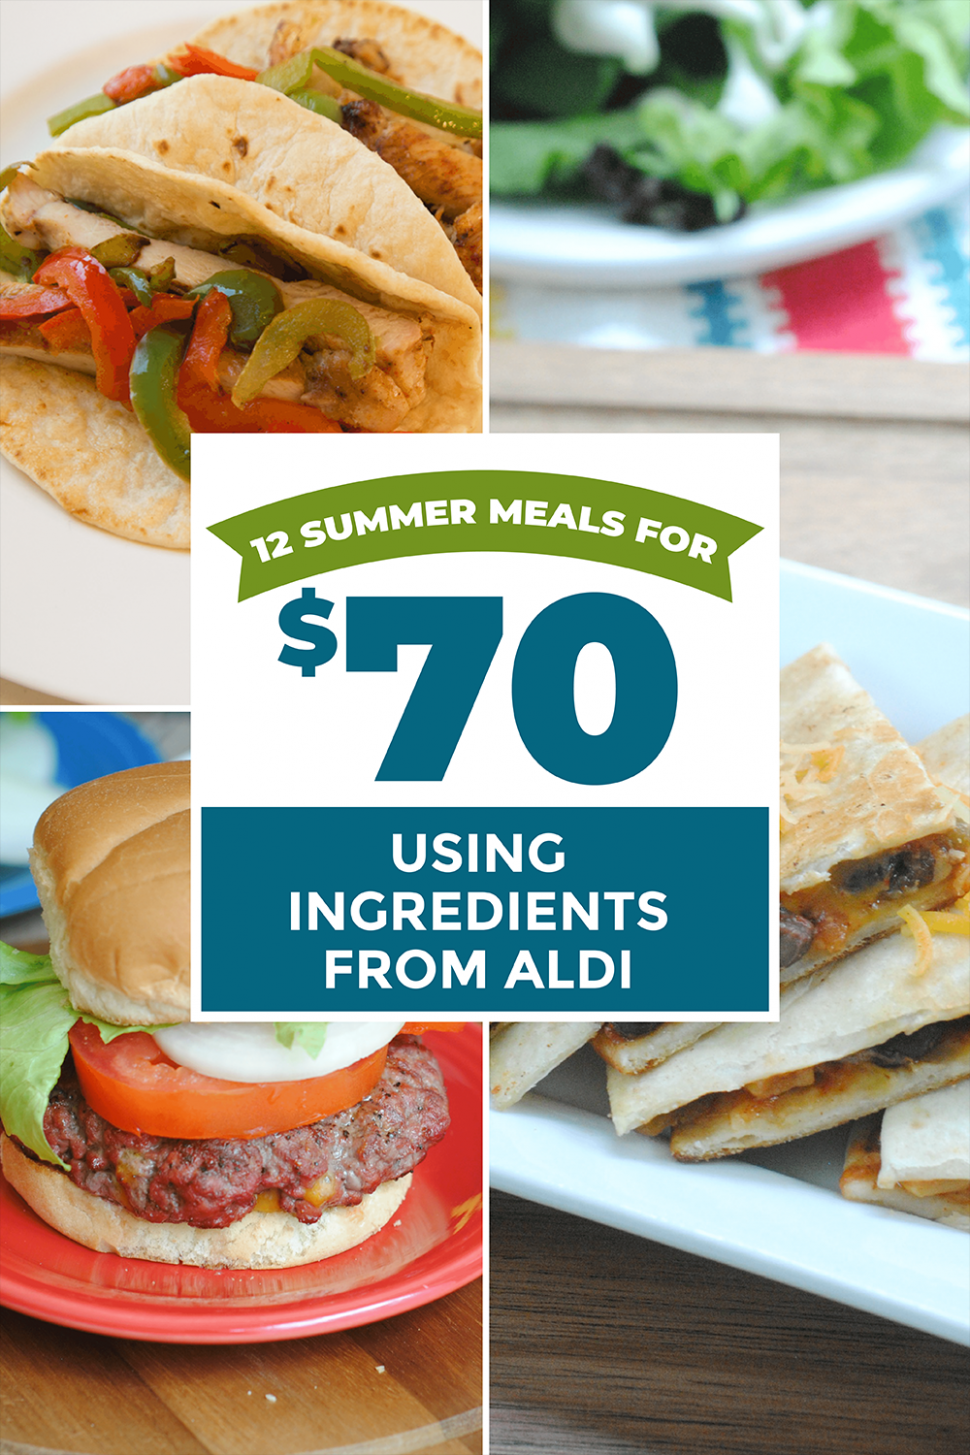 9 Meals for $9 - Summer Meals from Aldi - Summer Recipes Aldi